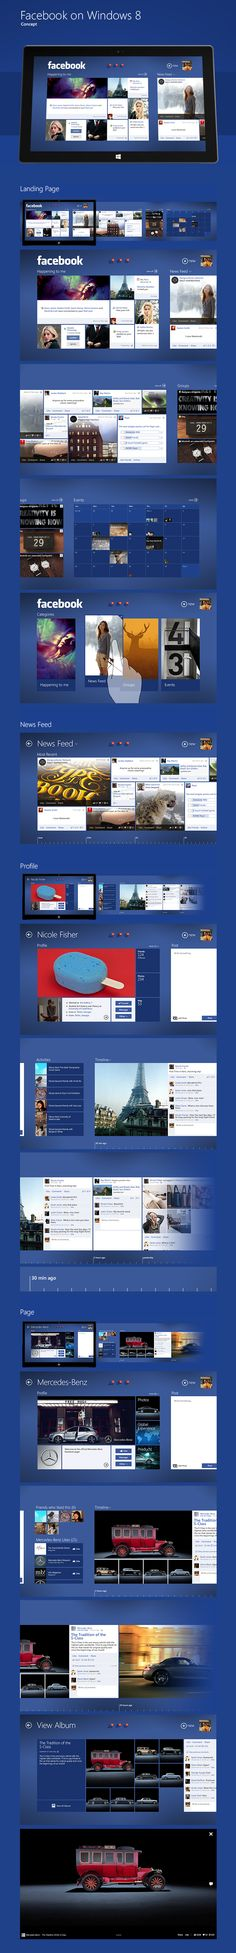 Facebook on Windows 8 / Shalva Bukia #design #ui #ux